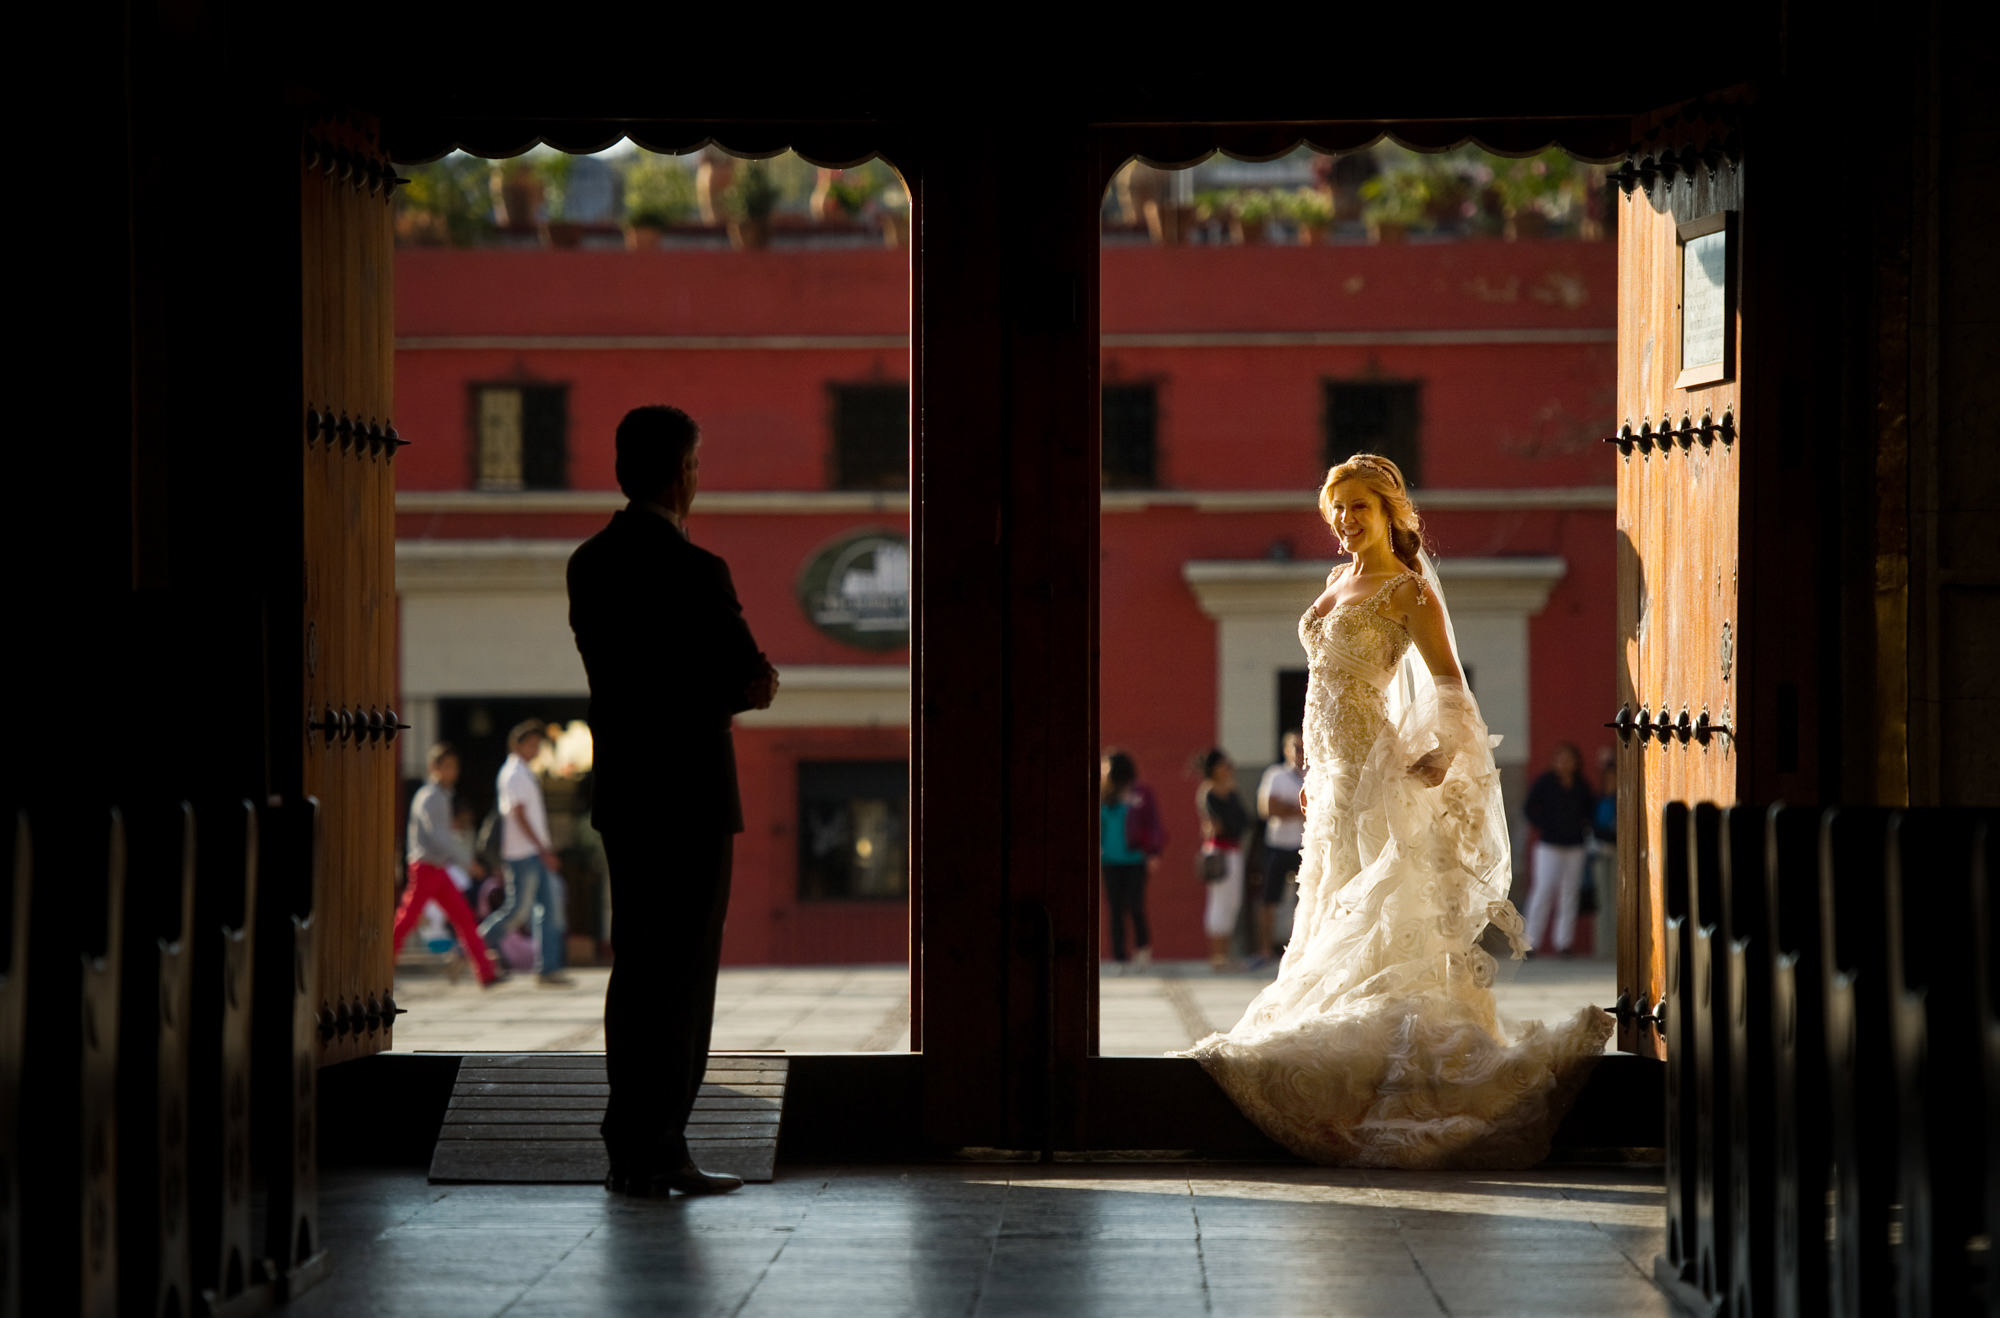 bride-and-groom-first-look-in-doorway-against-mexico-city-worlds-best-wedding-photos-cliff-mautner-new-york-wedding-photographers